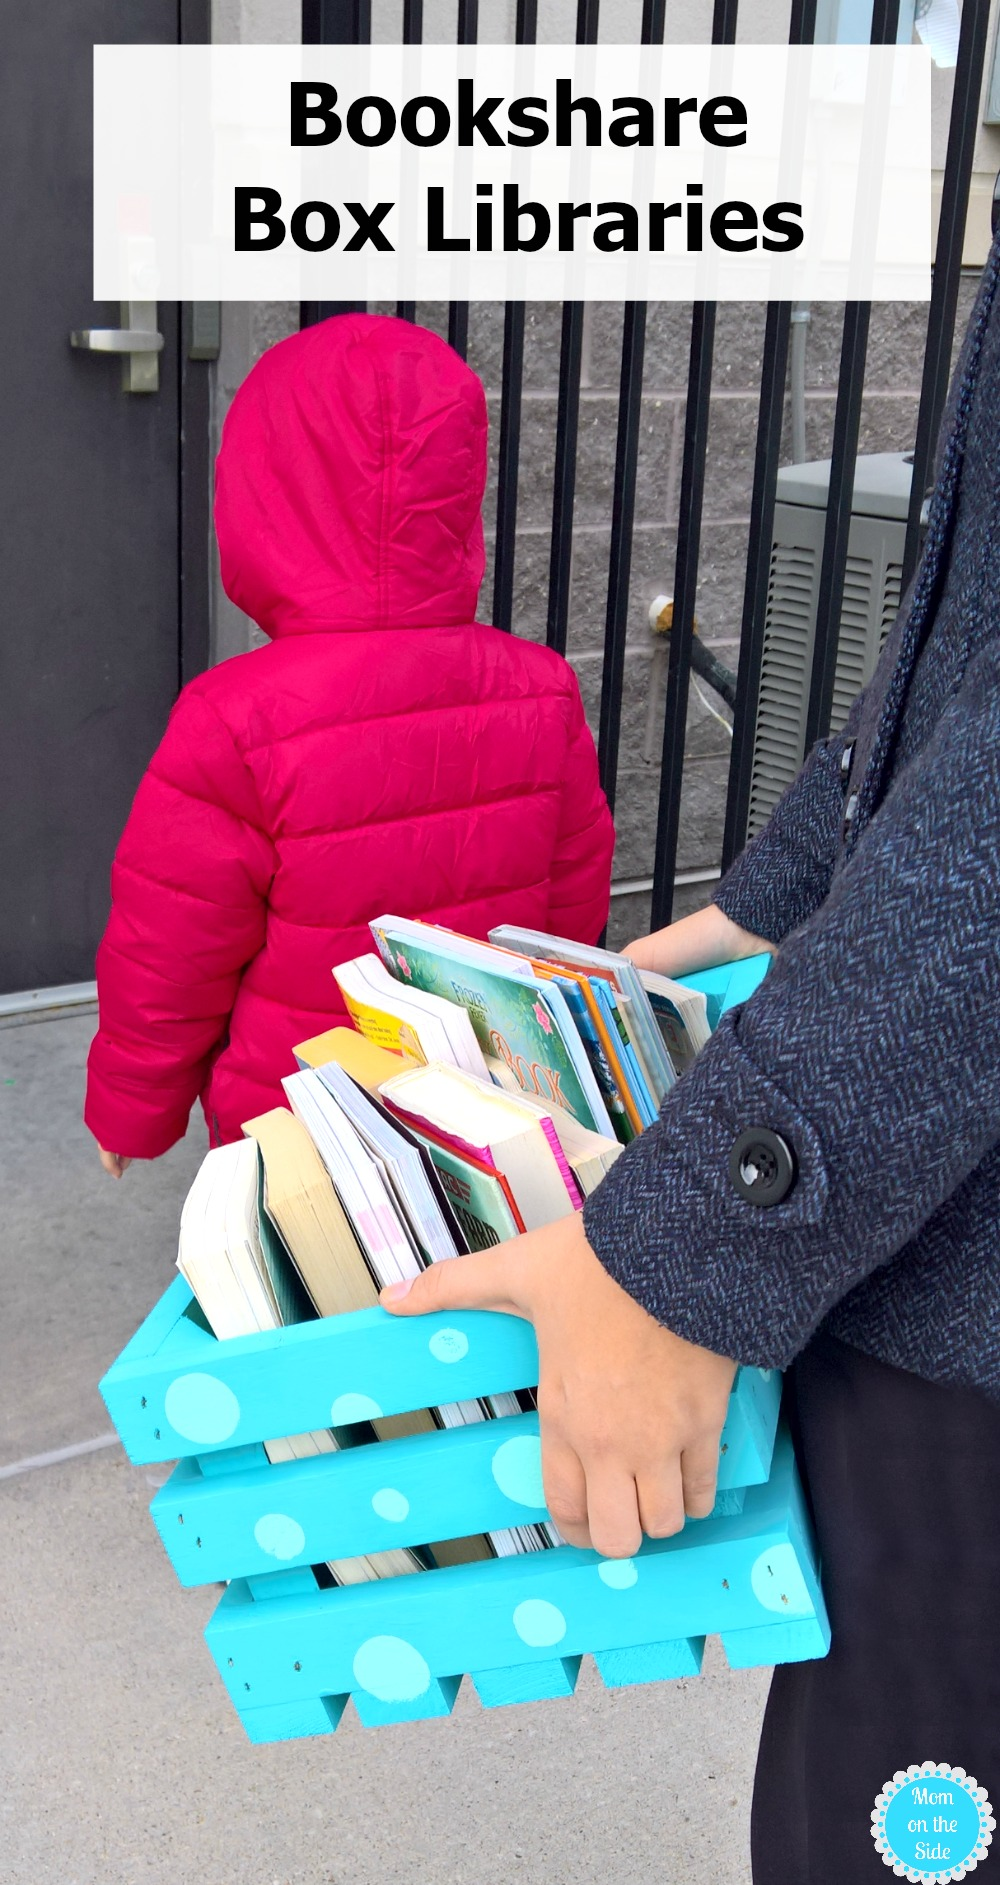 Bookshare Box Libraries are a great idea to make for Family Volunteer Day in November!